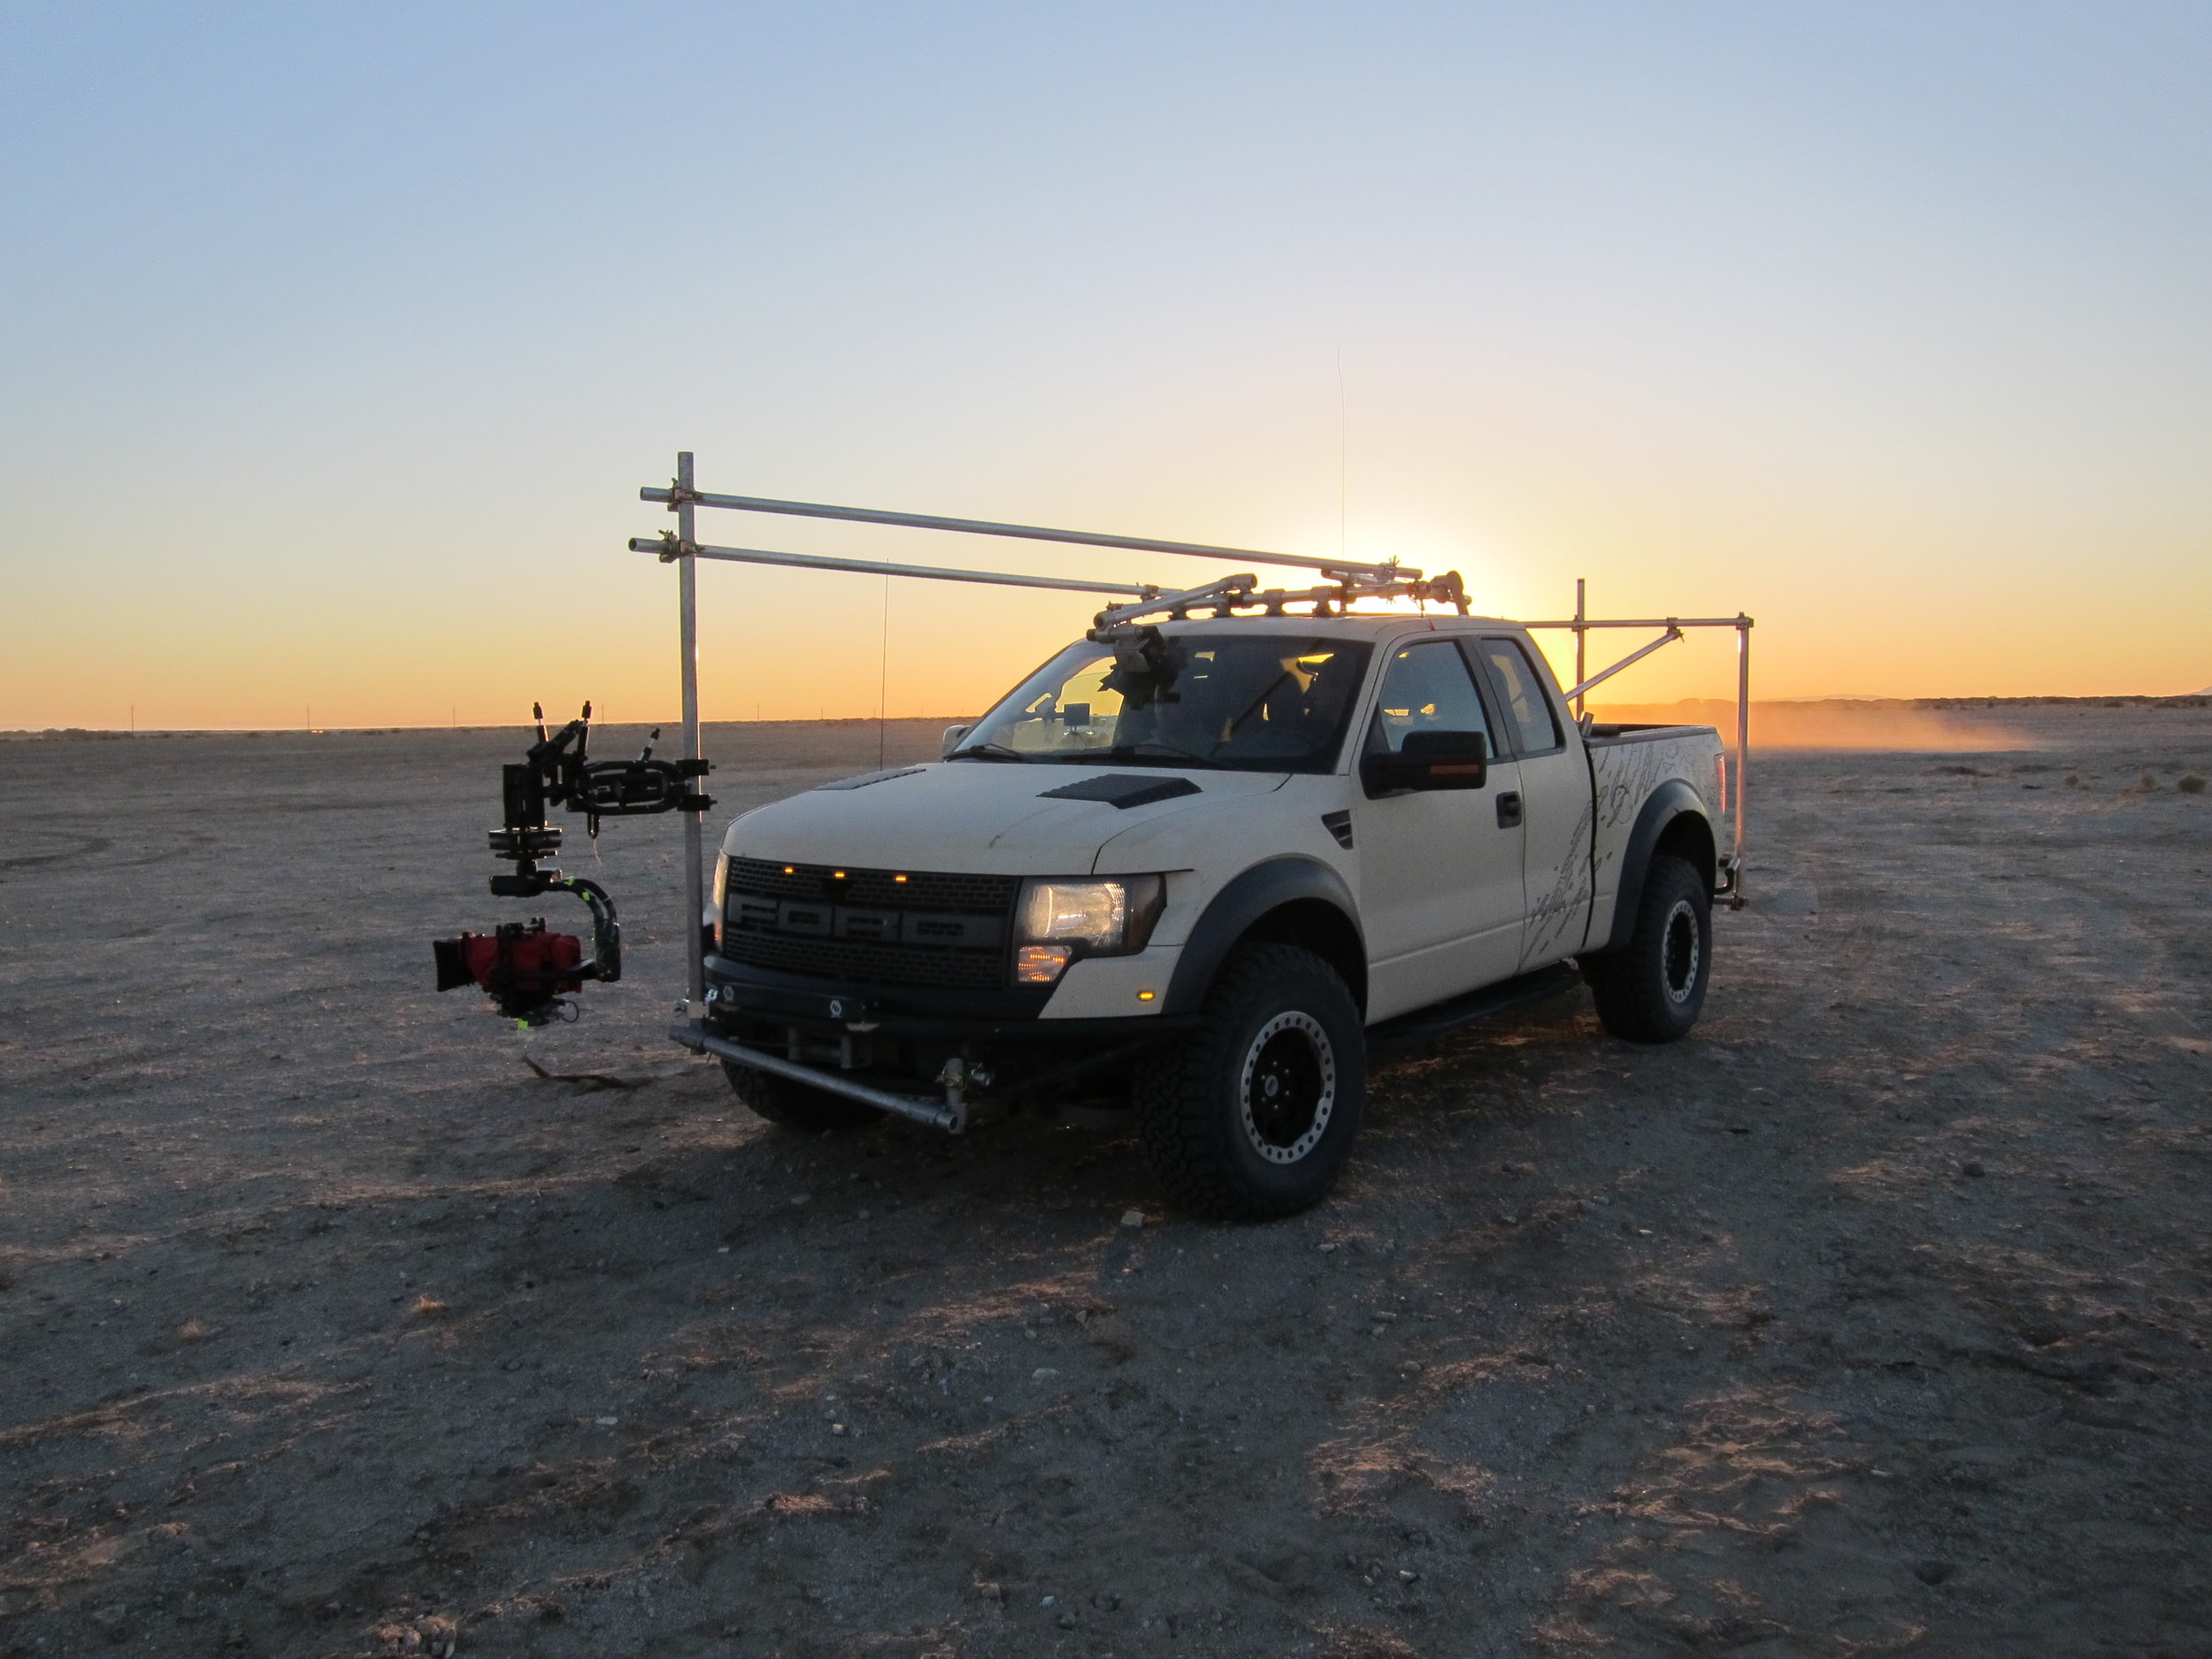 2006 Ford F150 Raptor with no luggage rack ready for shooting.  Movi Pro and Flowcine Black Arm.